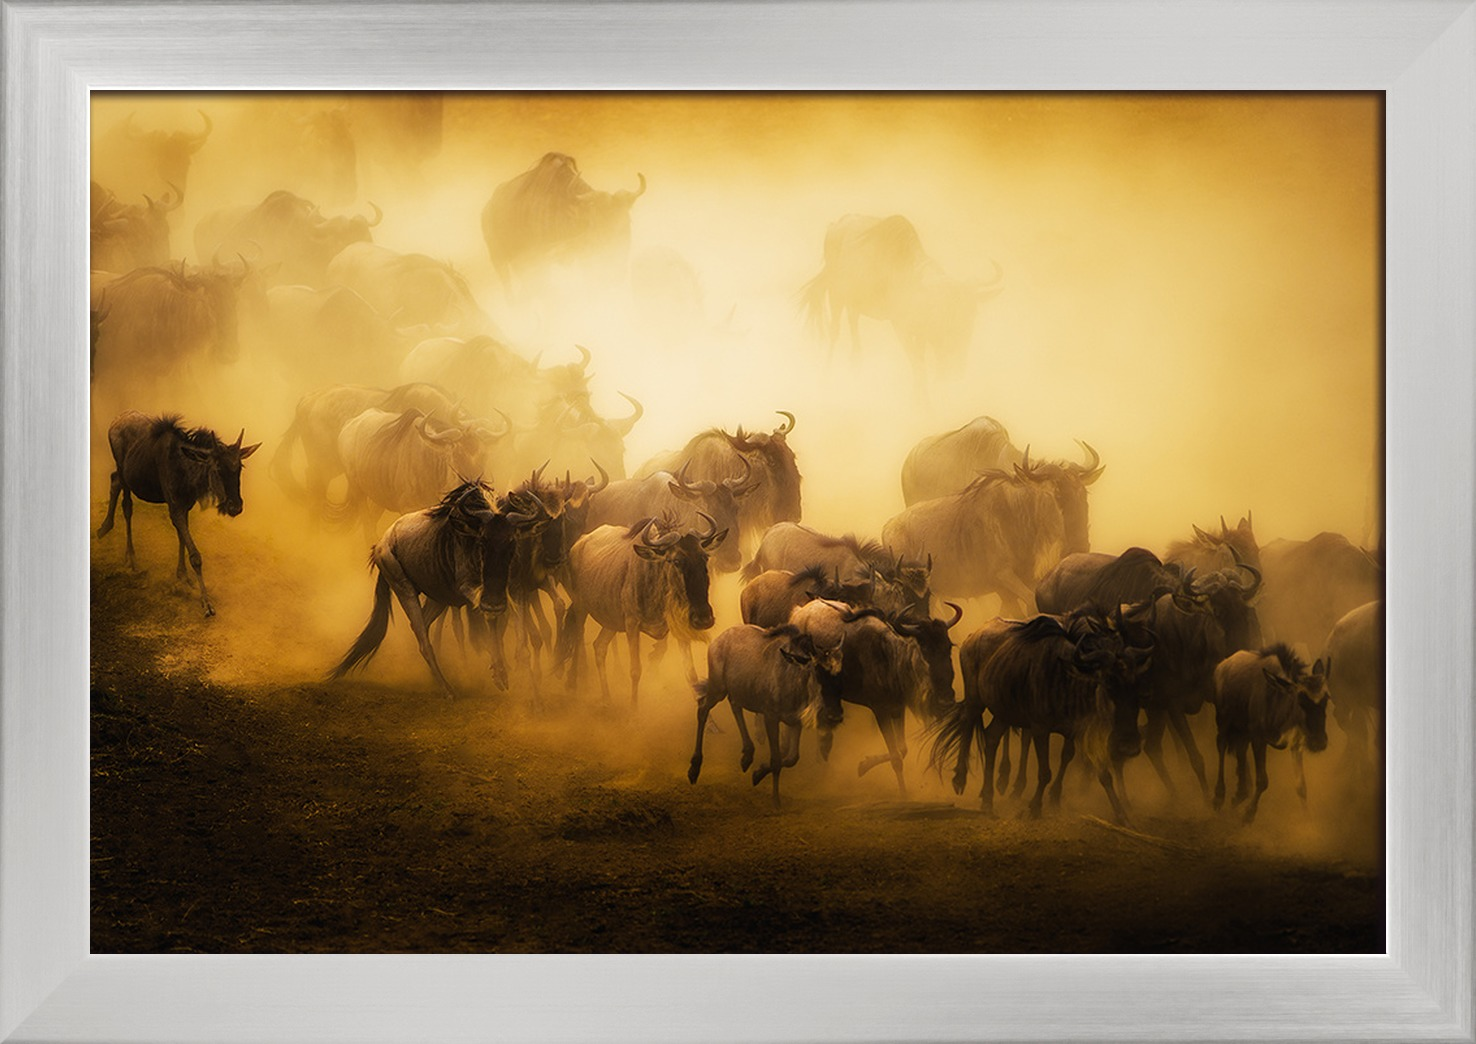 Wildebeest Herd Running Lantern Press Photography 18x12 Giclee Art Print Gallery Framed Silver Wood Walmart Com Walmart Com